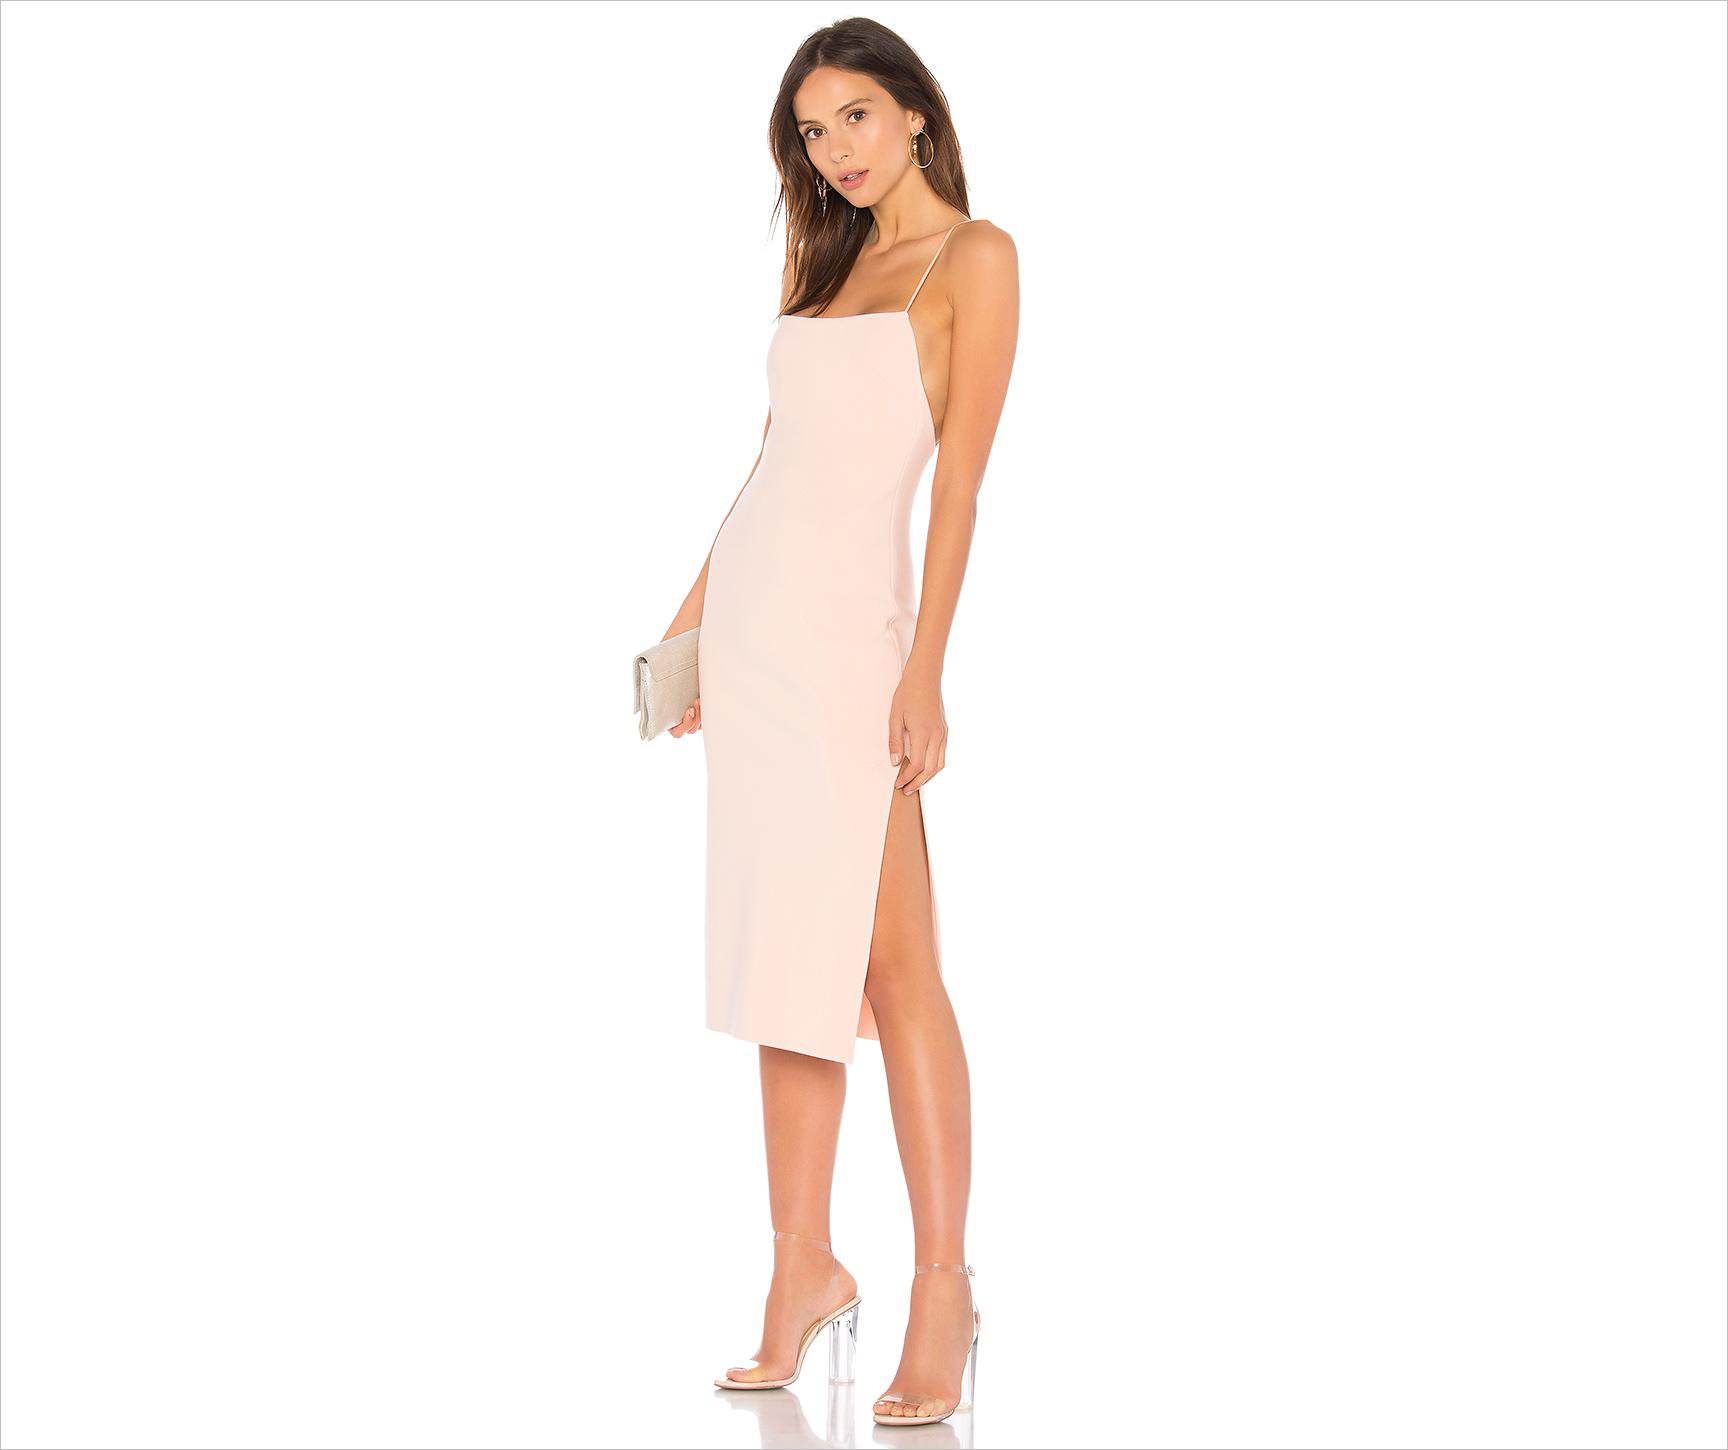 marvellous midi dress in light pink bec and bridge revolve wedding guest dress ideas